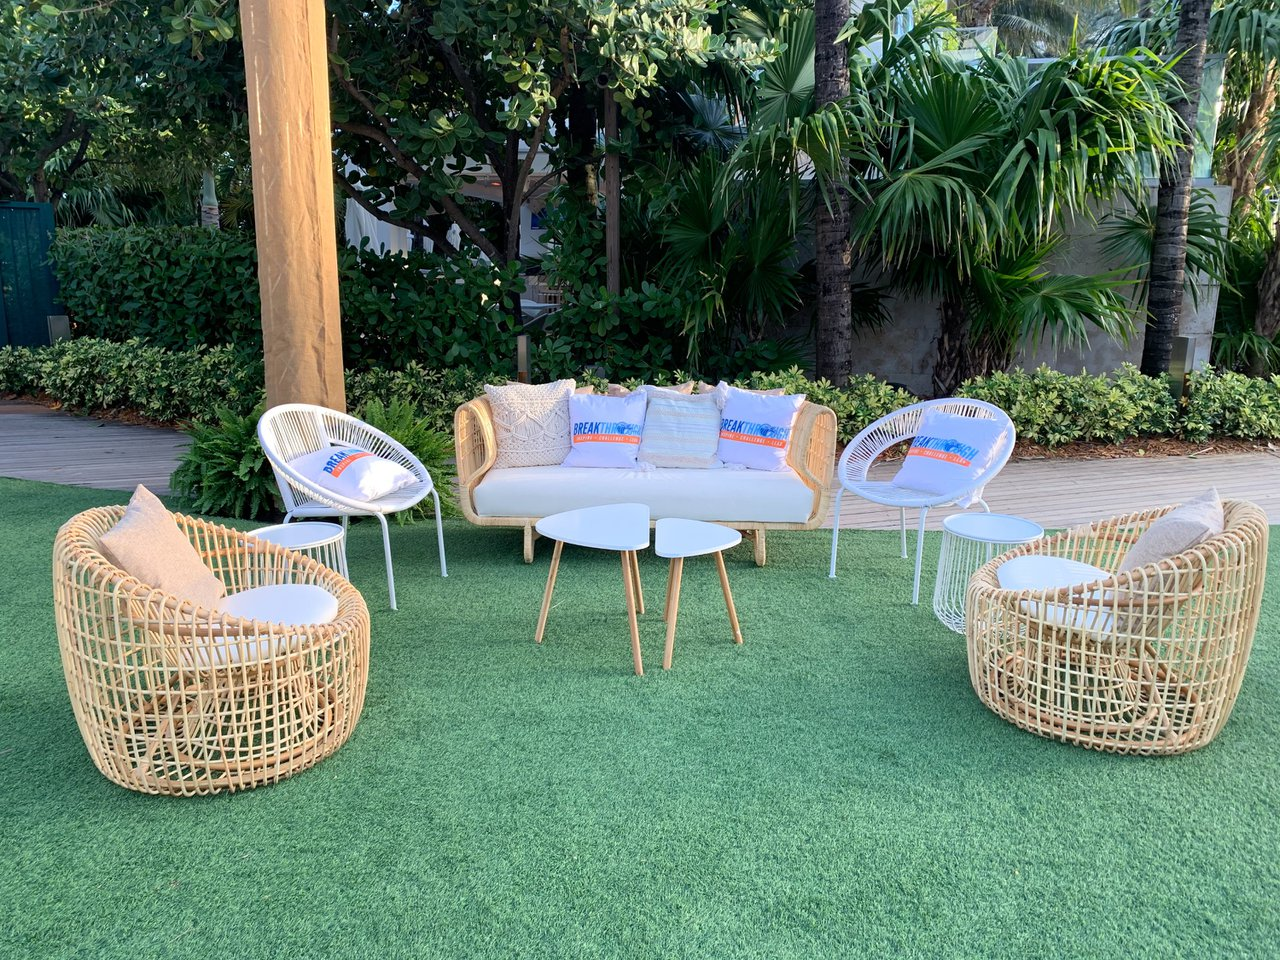 Seaside Soiree photo Boho rattan furniture grouping with custom branded pillows and white wire chairs.jpg